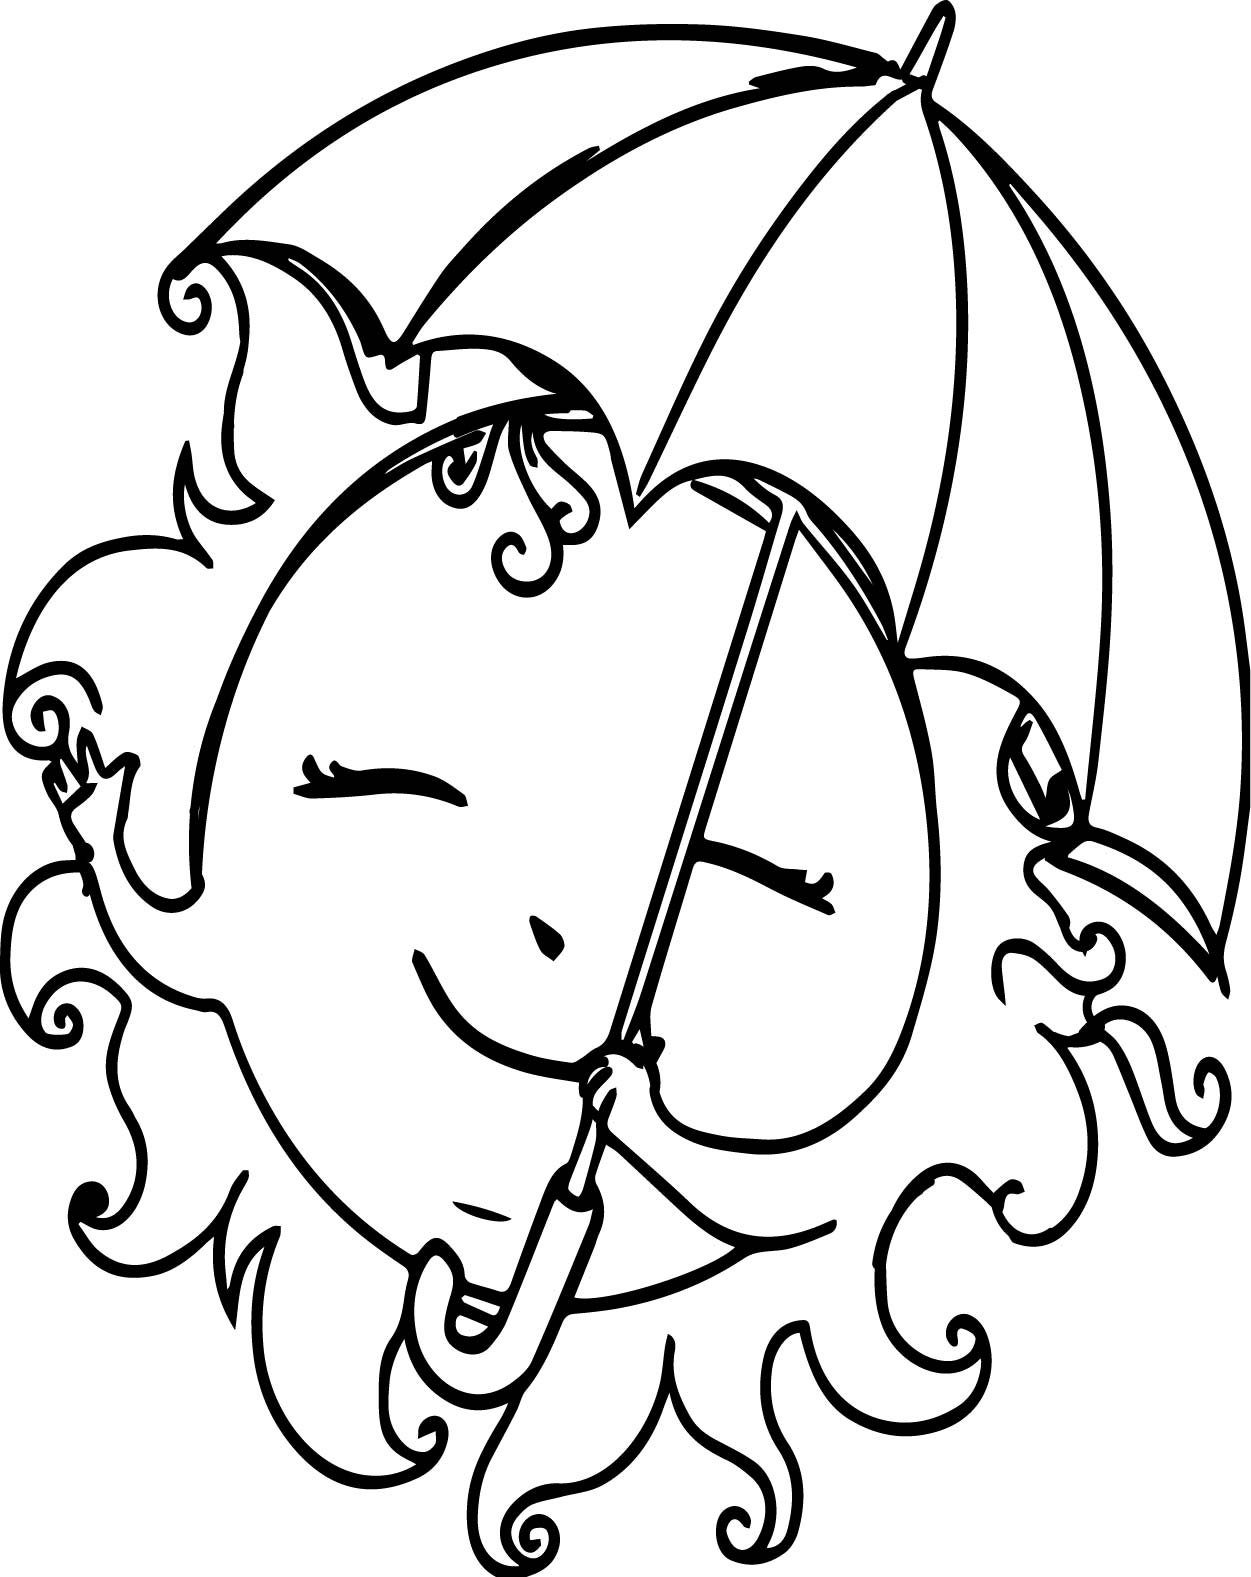 20 free summer coloring pages pictures free coloring pages part 2 free summer coloring pages free - Summer Coloring Page 2